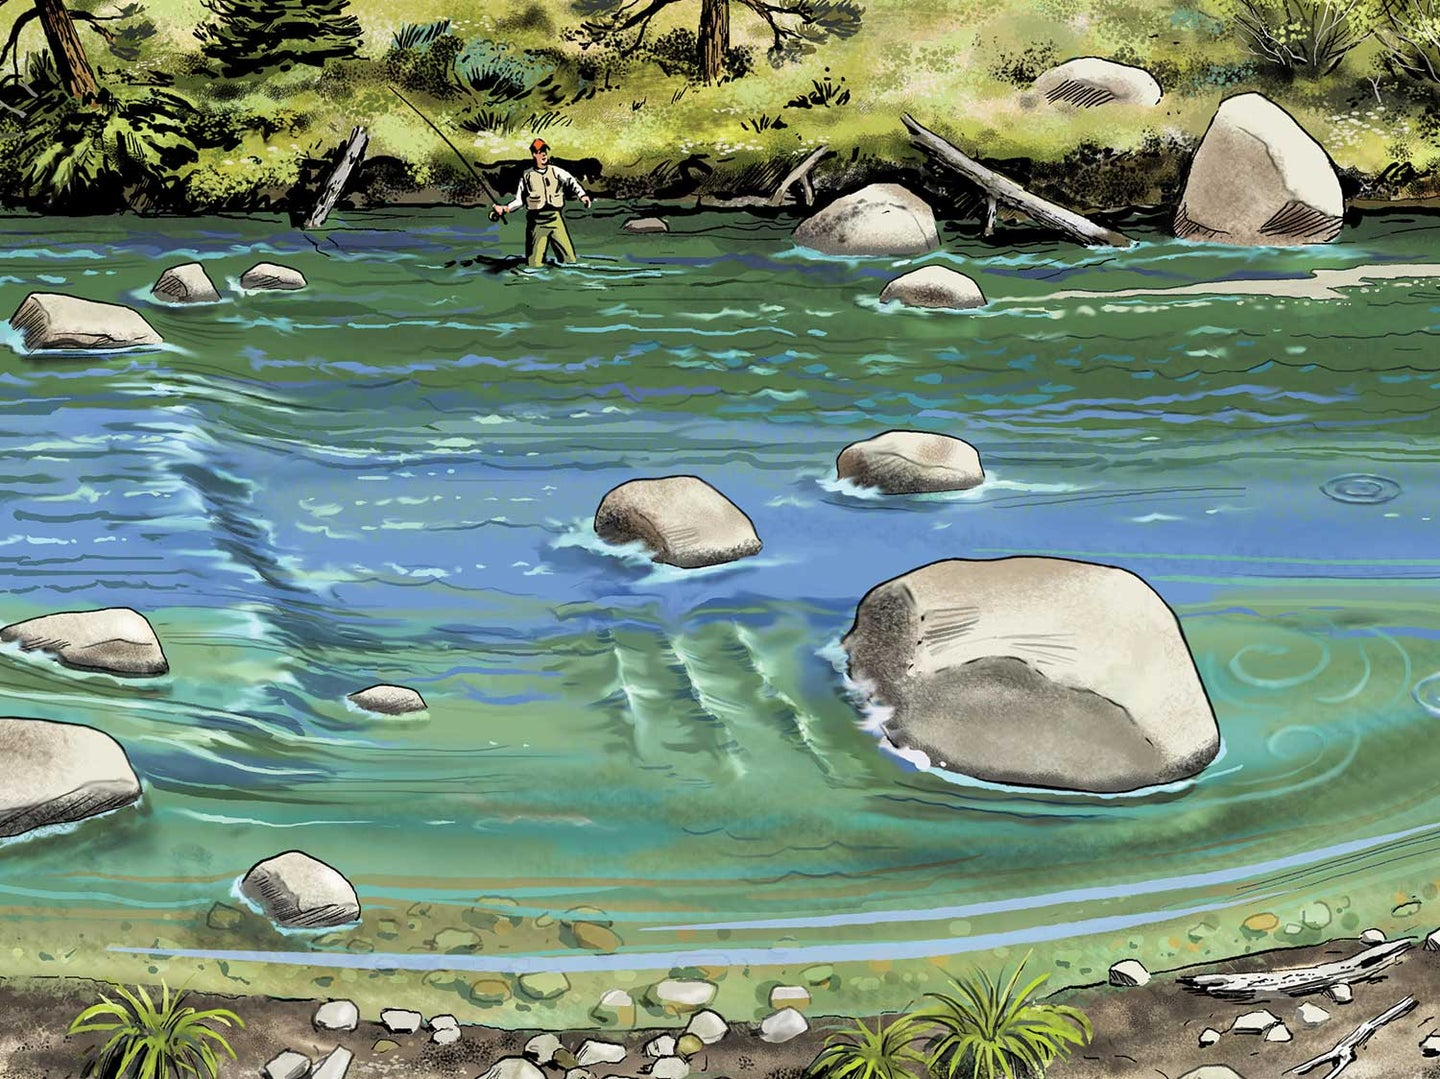 How Reading Trout Water Can Make You a Better Outdoorsman